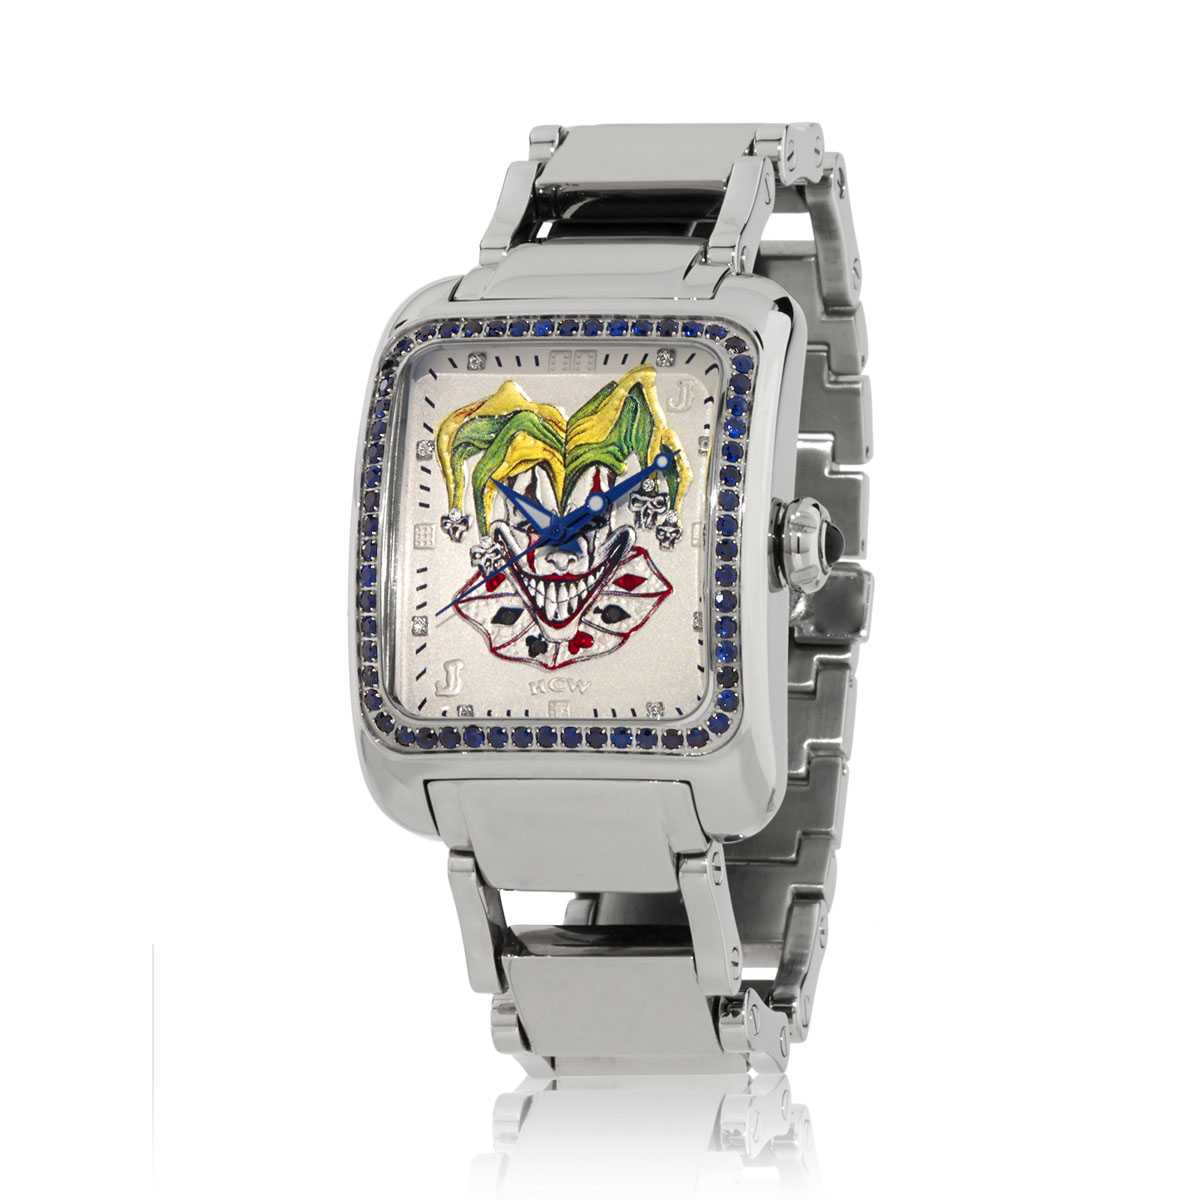 HCW308-DC-SAP Joker Poker Watch :: in Stainless Steel, 2ct VS Blue Sapphires, designed by Steve Soffa